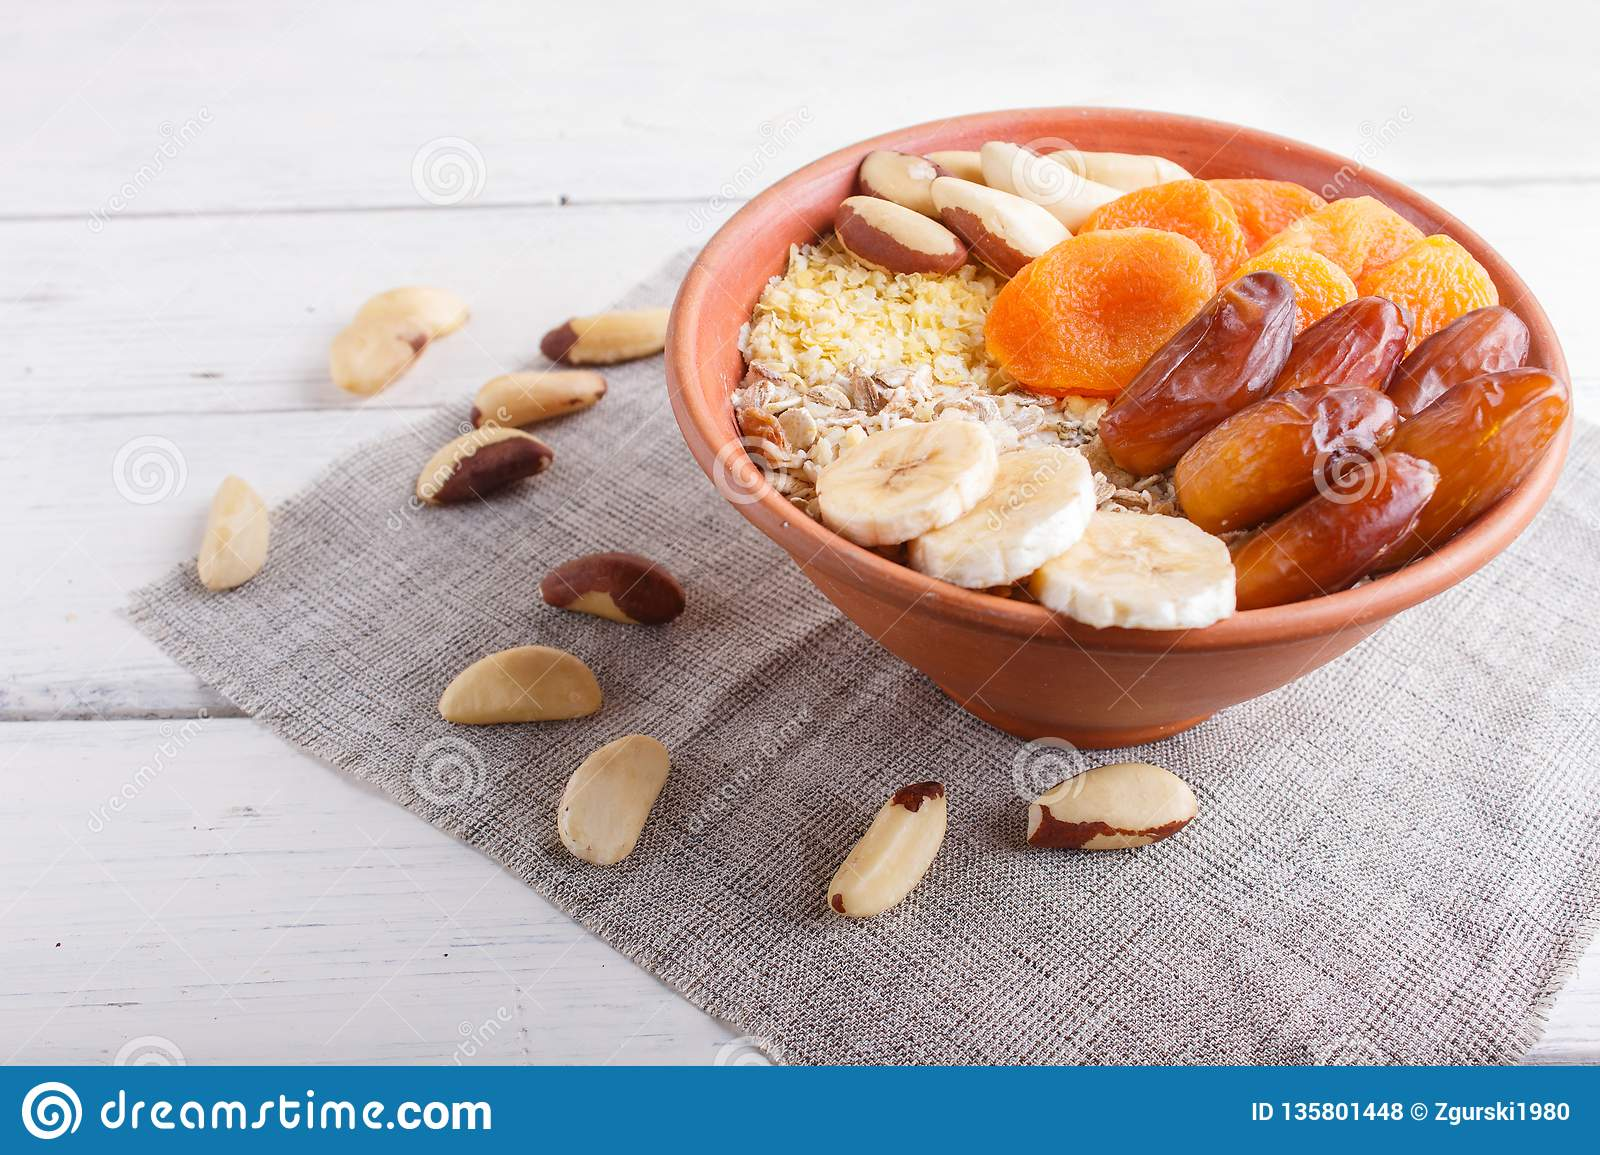 A plate with muesli, banana, dried apricots, dates, Brazil nuts on a white wooden background